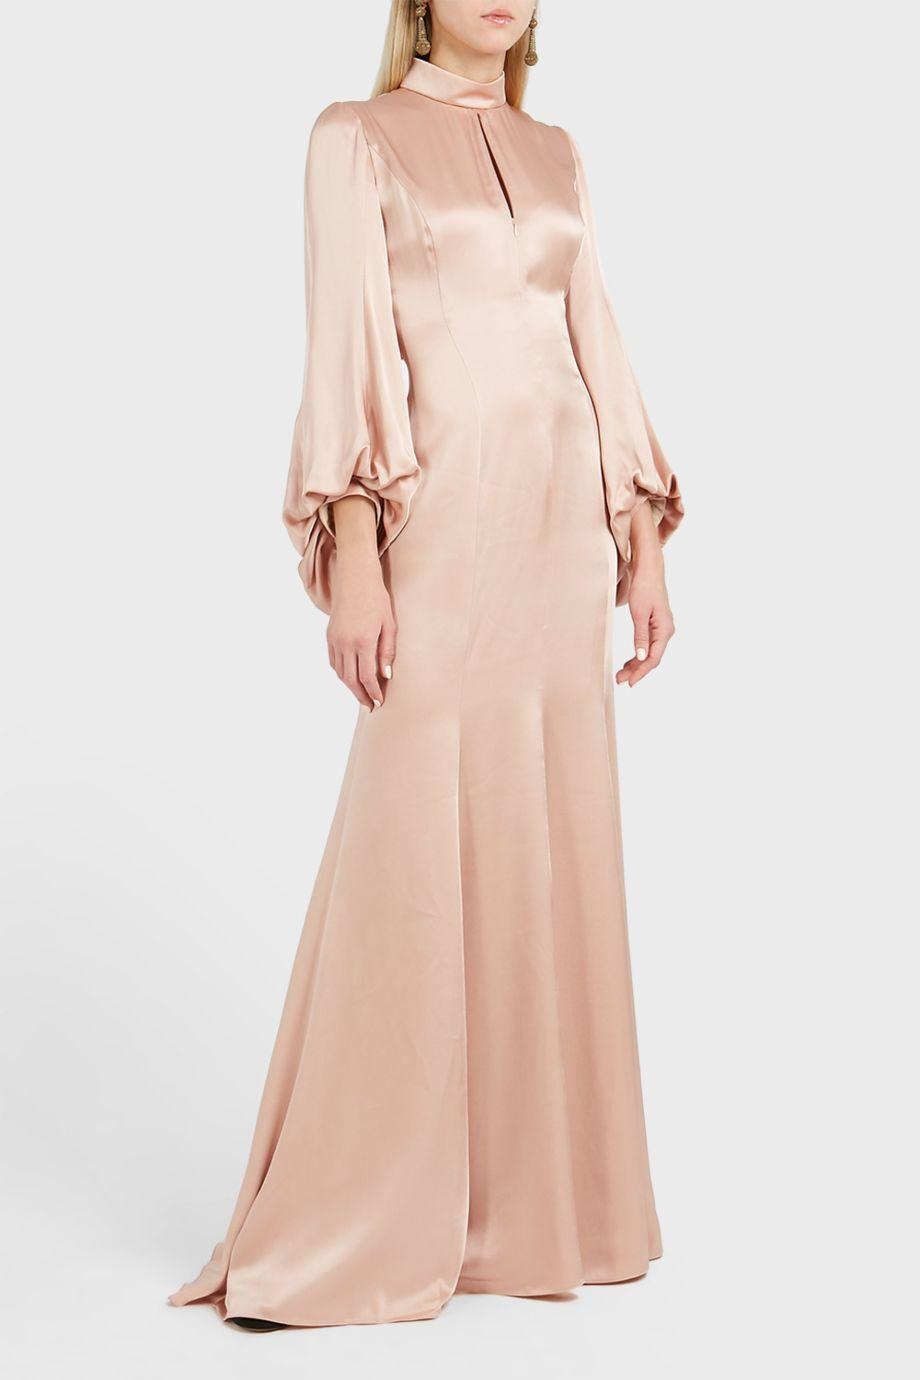 Andrew Gn Wide Sleeve Dress